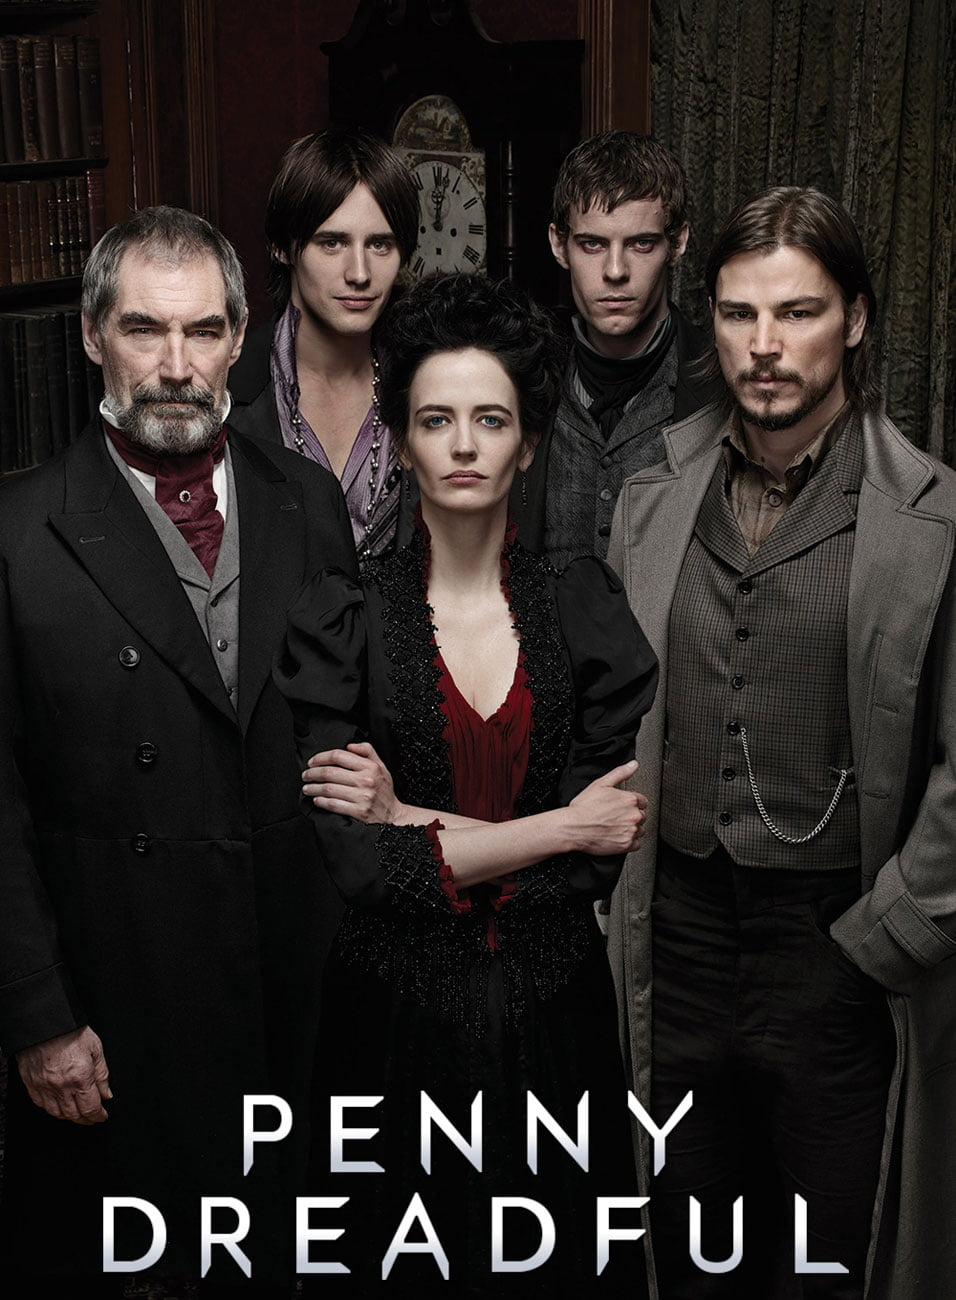 penny dreadful poster 3